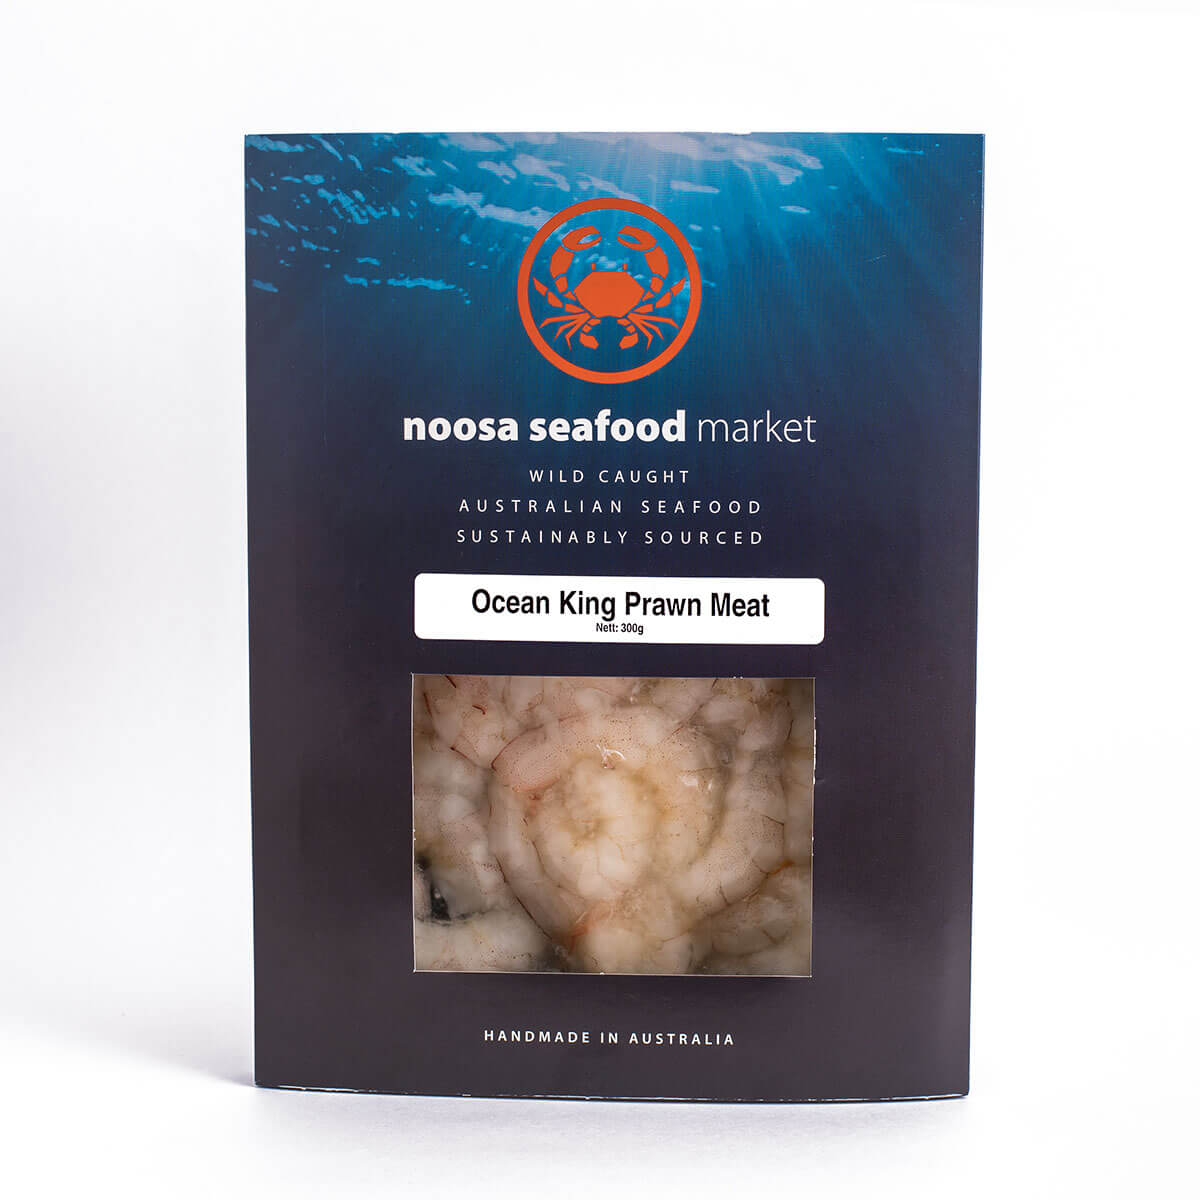 Premium Australian Ocean King Prawn meat